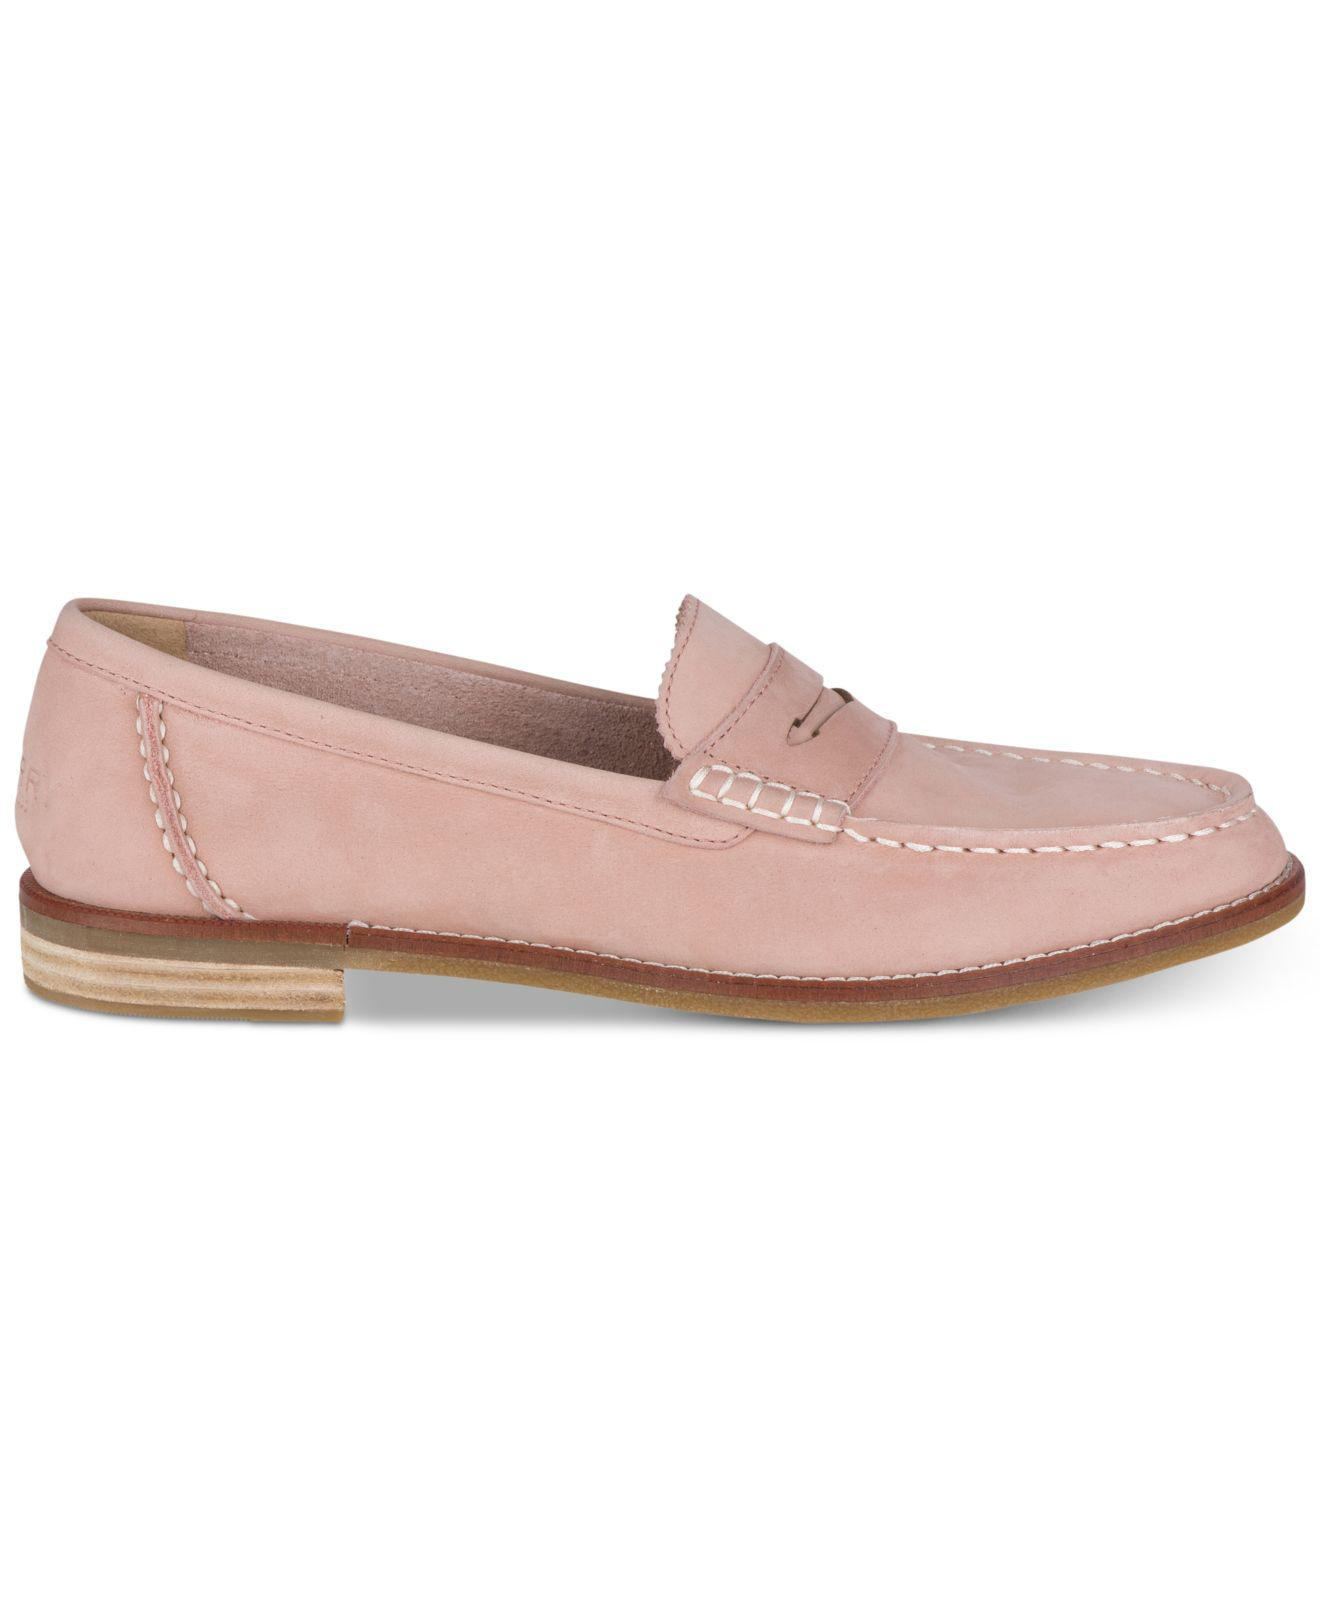 ef3ff96dbf03e7 Lyst - Sperry Top-Sider Seaport Penny Memory Foam Loafers in Pink